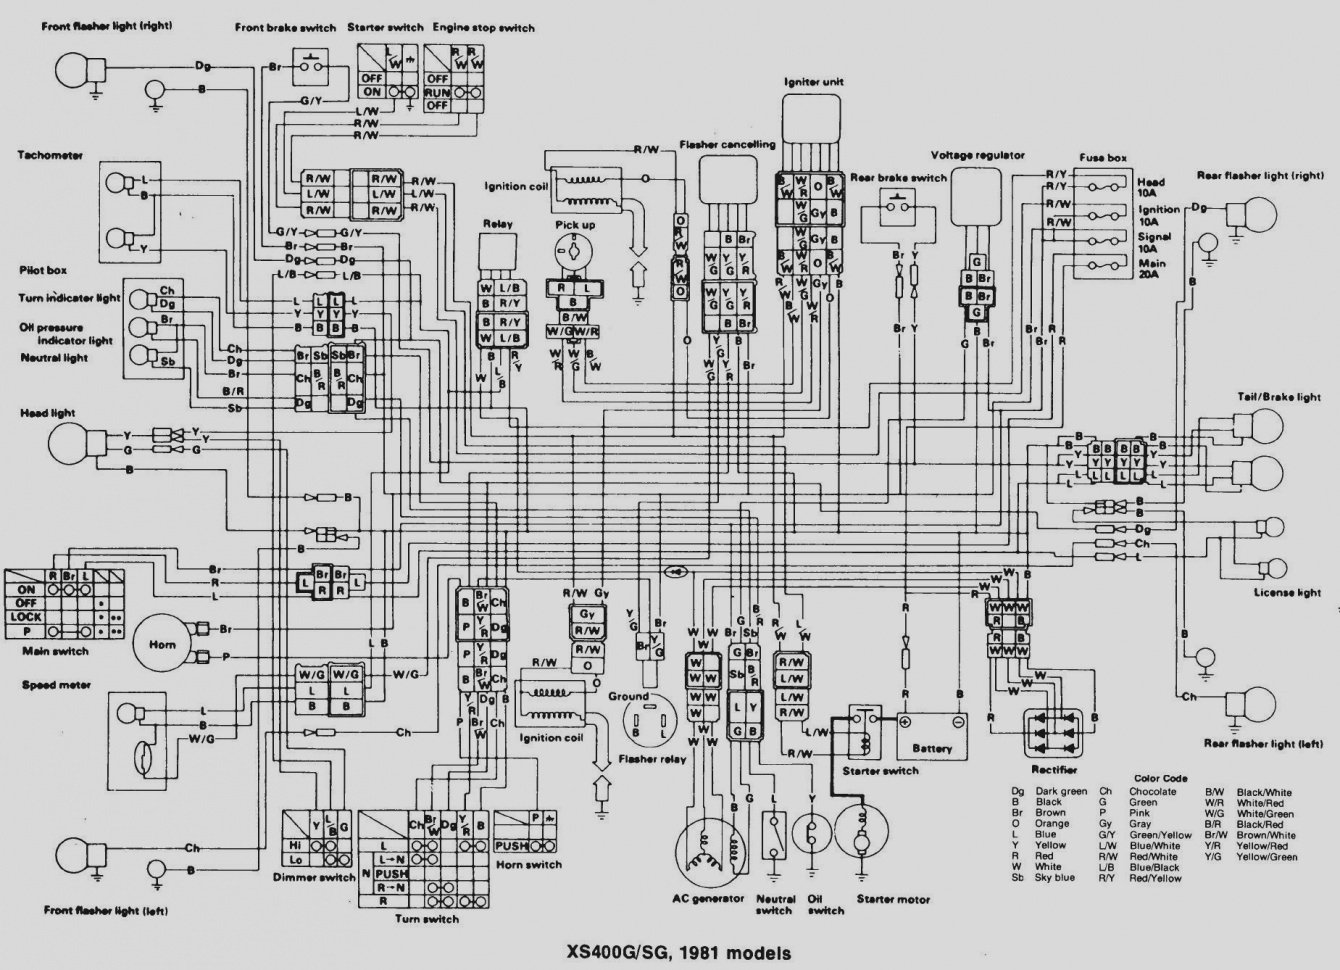 Yamaha Grizzly Wiring Diagram Full Size Of Wiring Diagram Yamaha Kodiak Wiring Diagram Lovely Yamaha Grizzly Wiring A on 1979 yamaha xs1100 wiring diagram